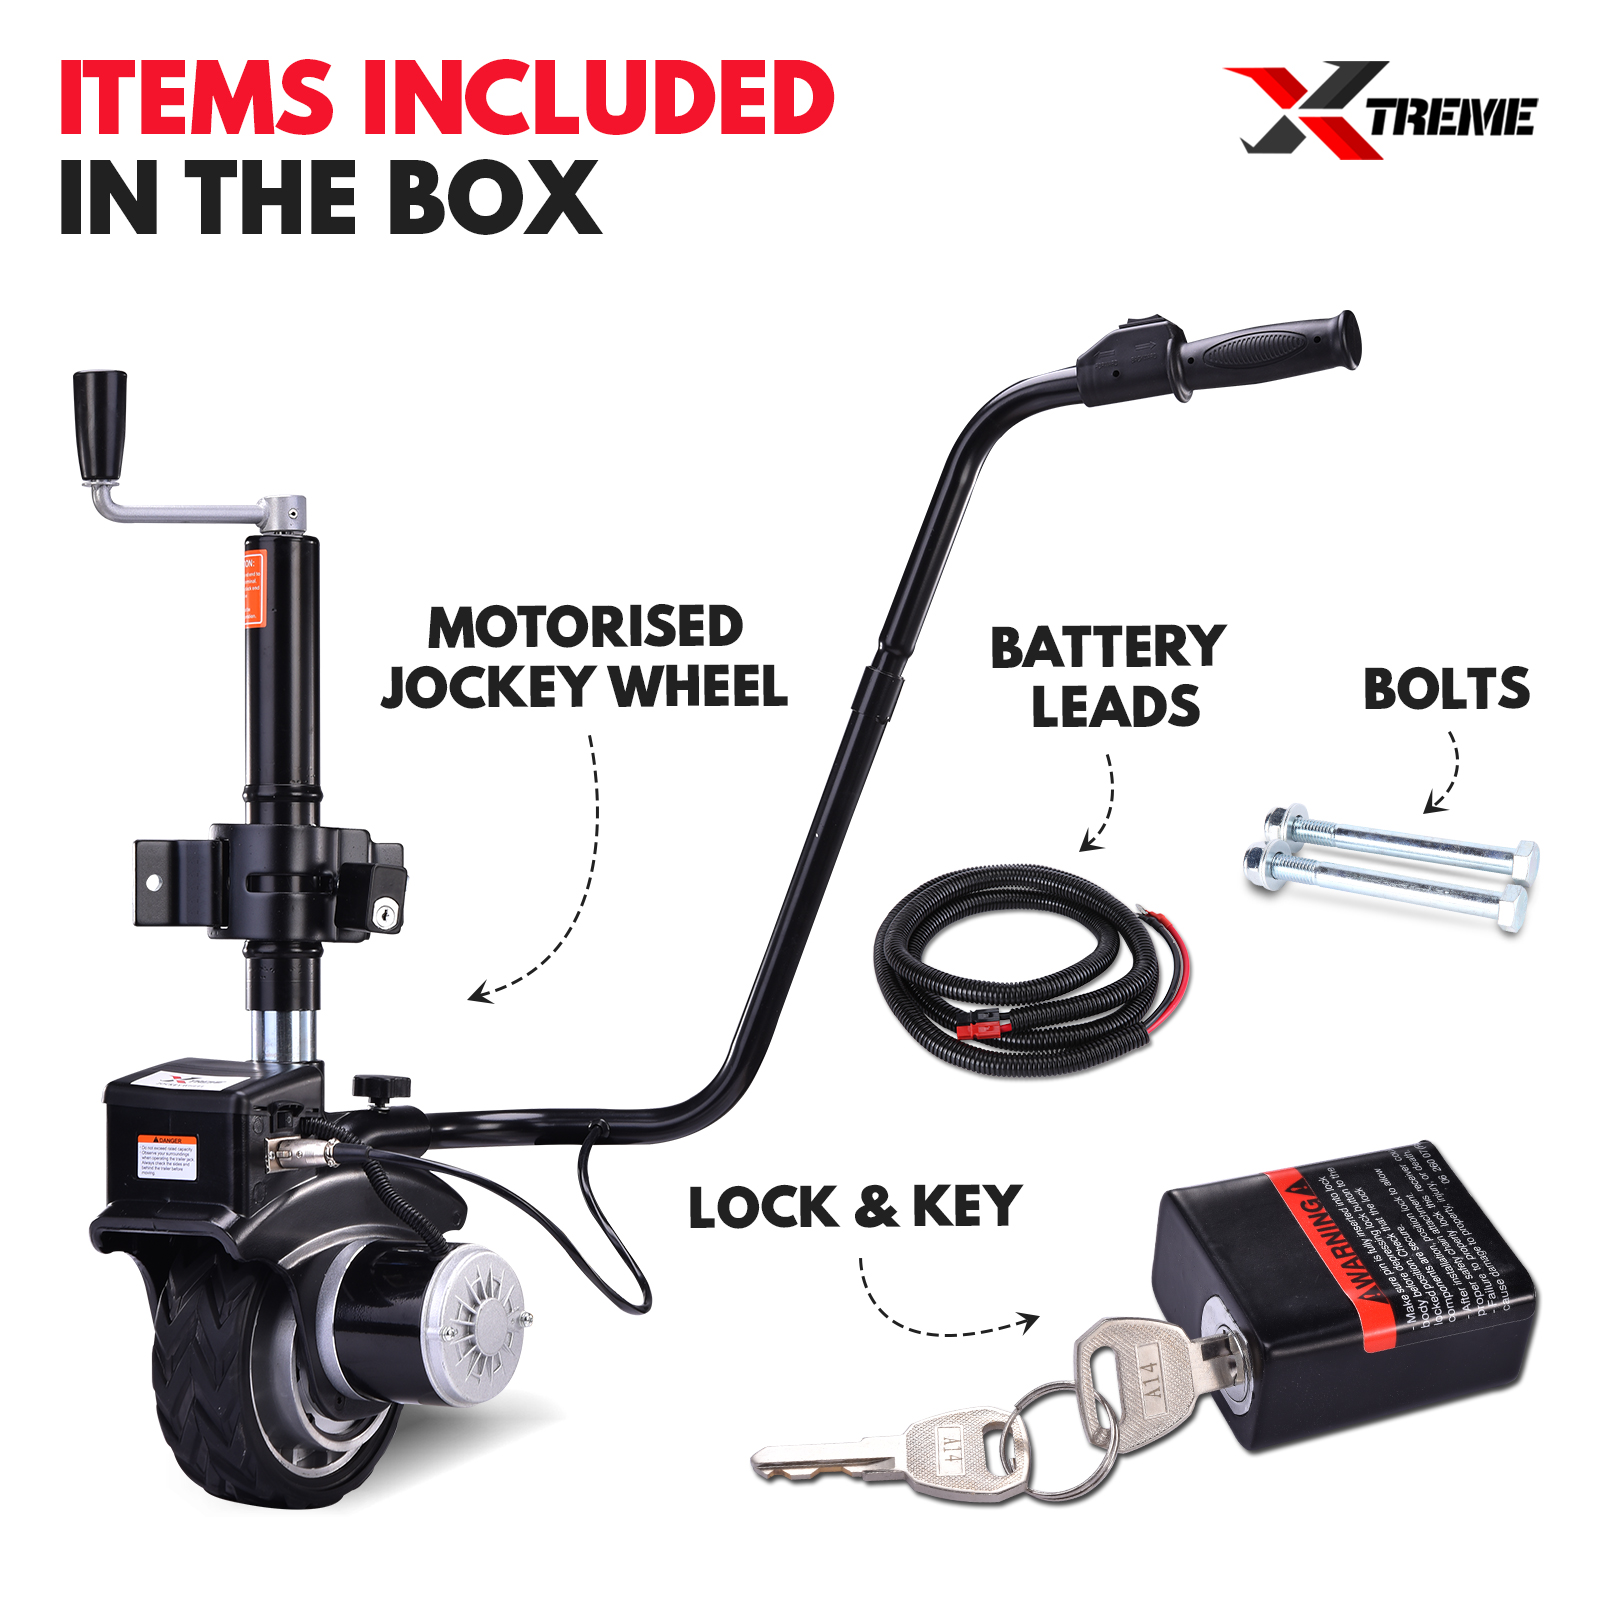 XTREME Motorised Jockey Wheel 12V 350W Electric Power Trailer Mover Caravan B